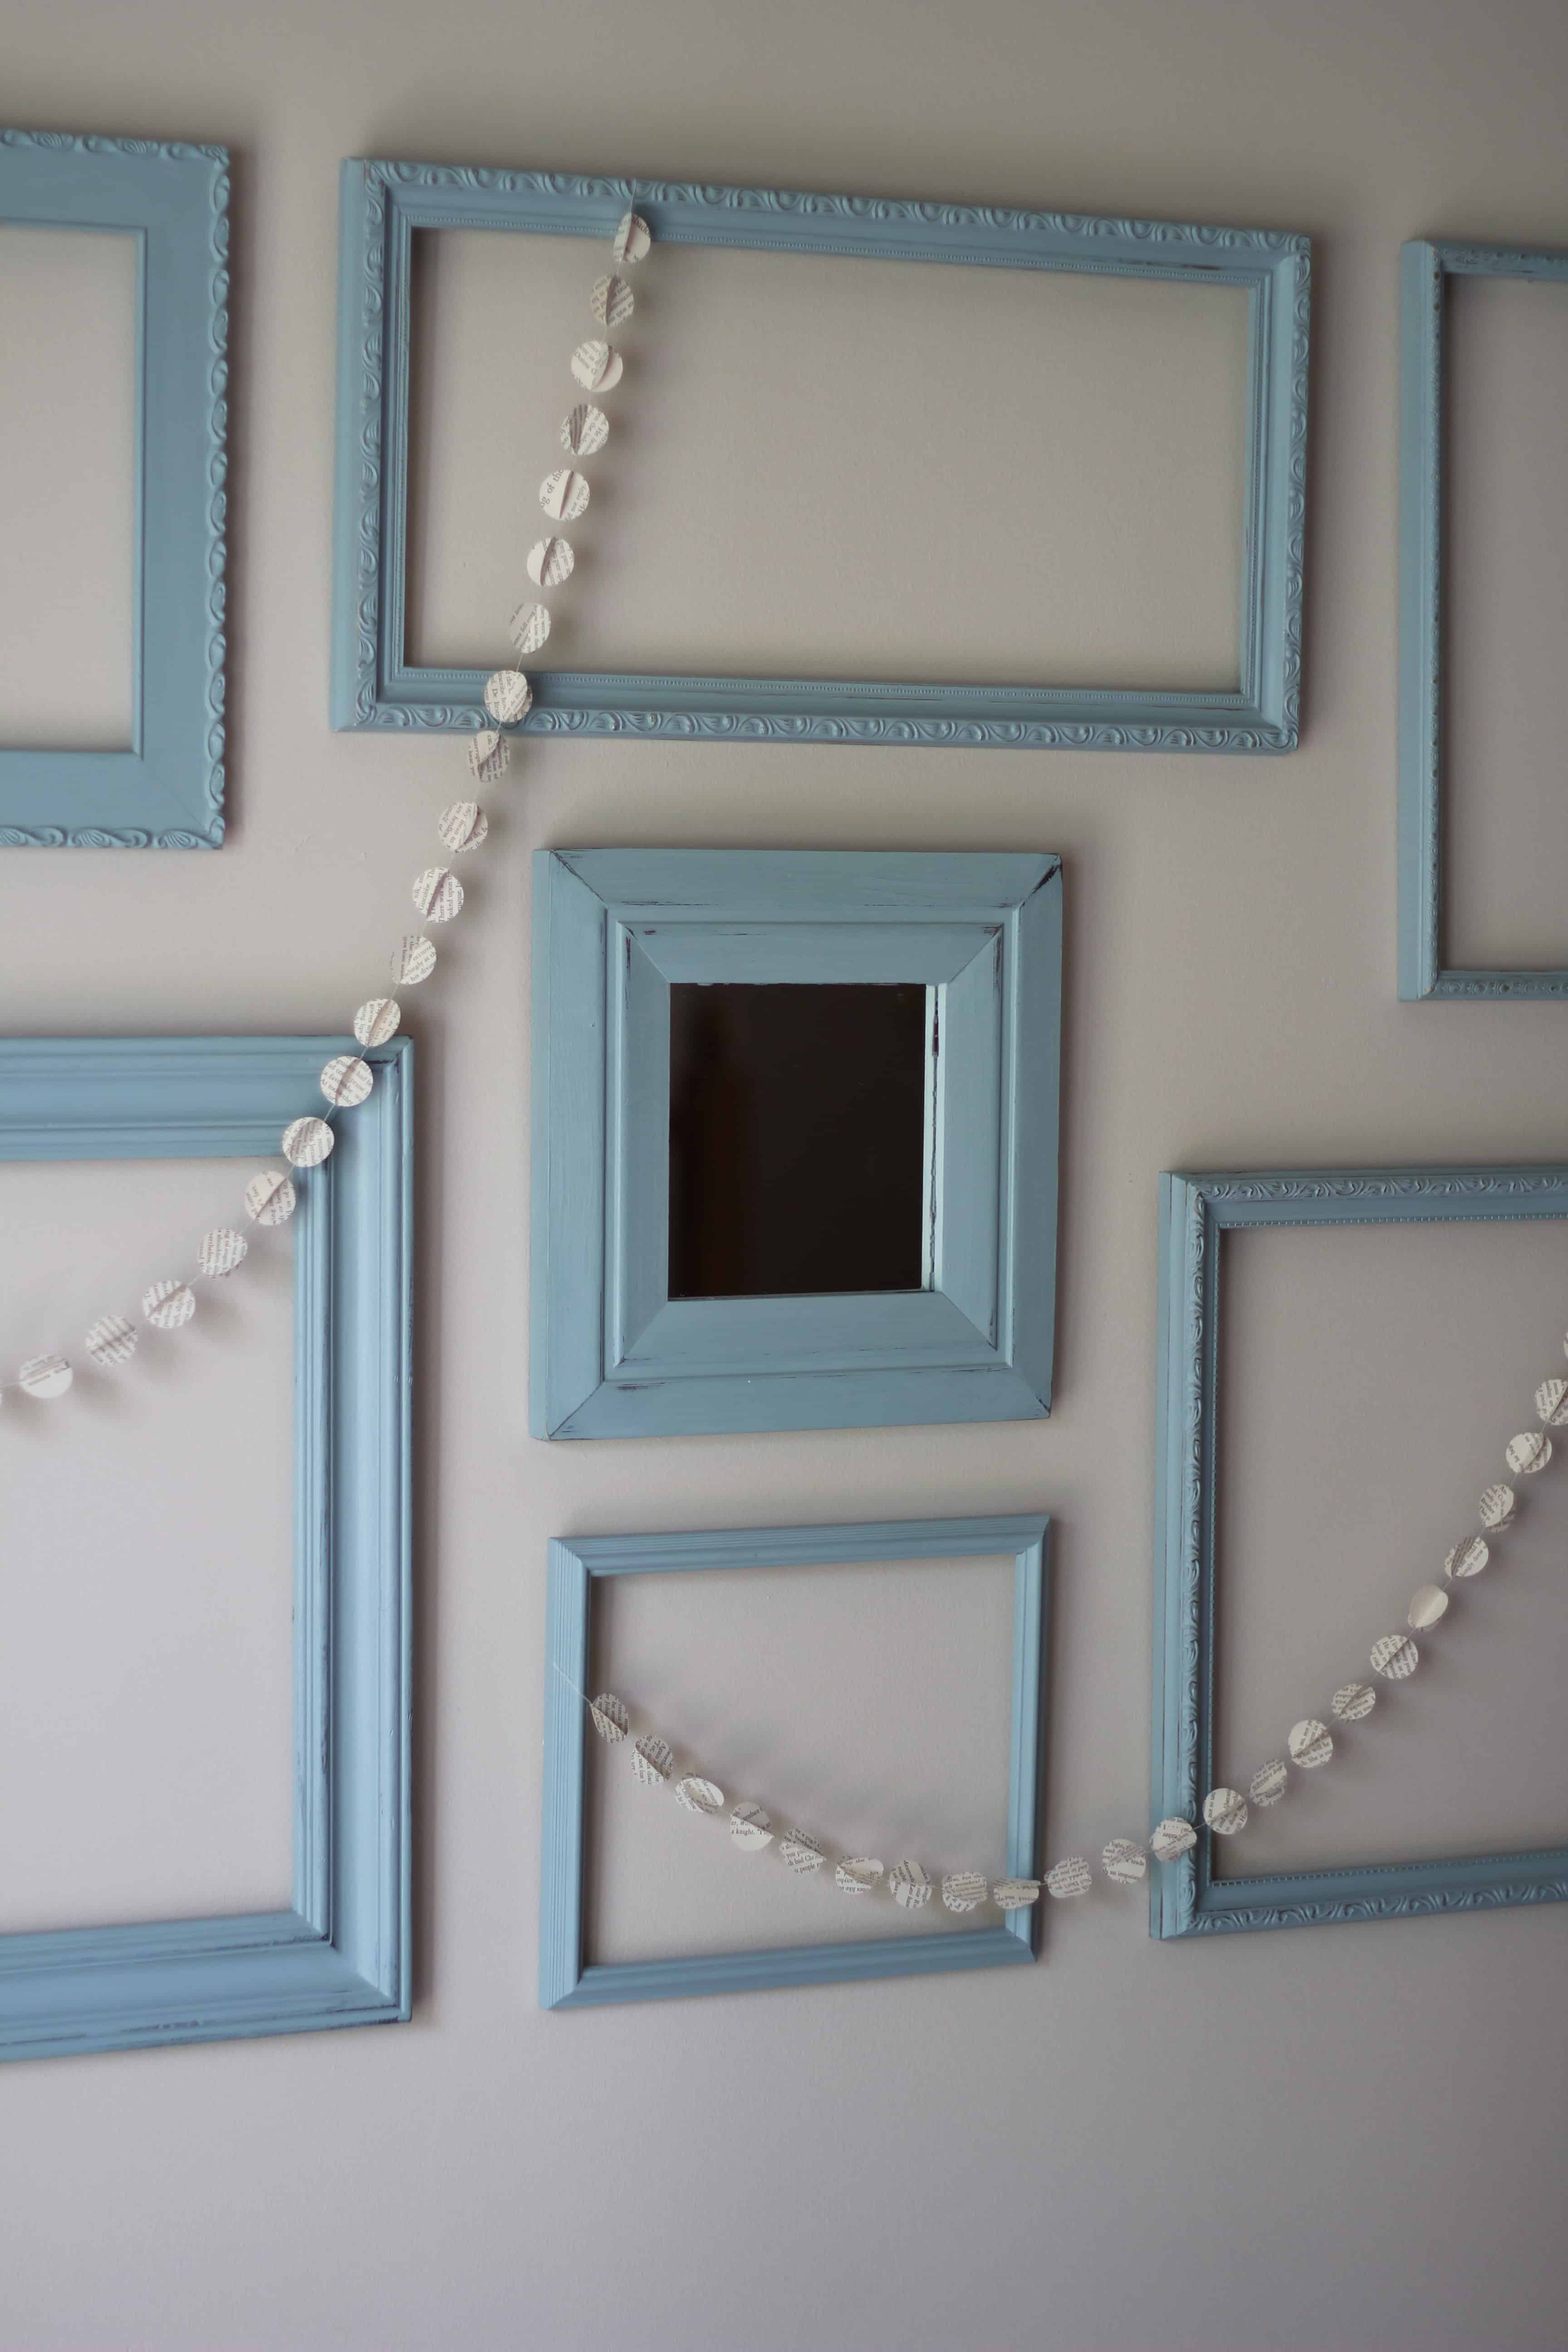 When you are decorating your home on a budget, it helps to get creative. Learn how I made this farmhouse gallery wall using thrifted picture frames and chalk paint.   bellewoodcottage.com